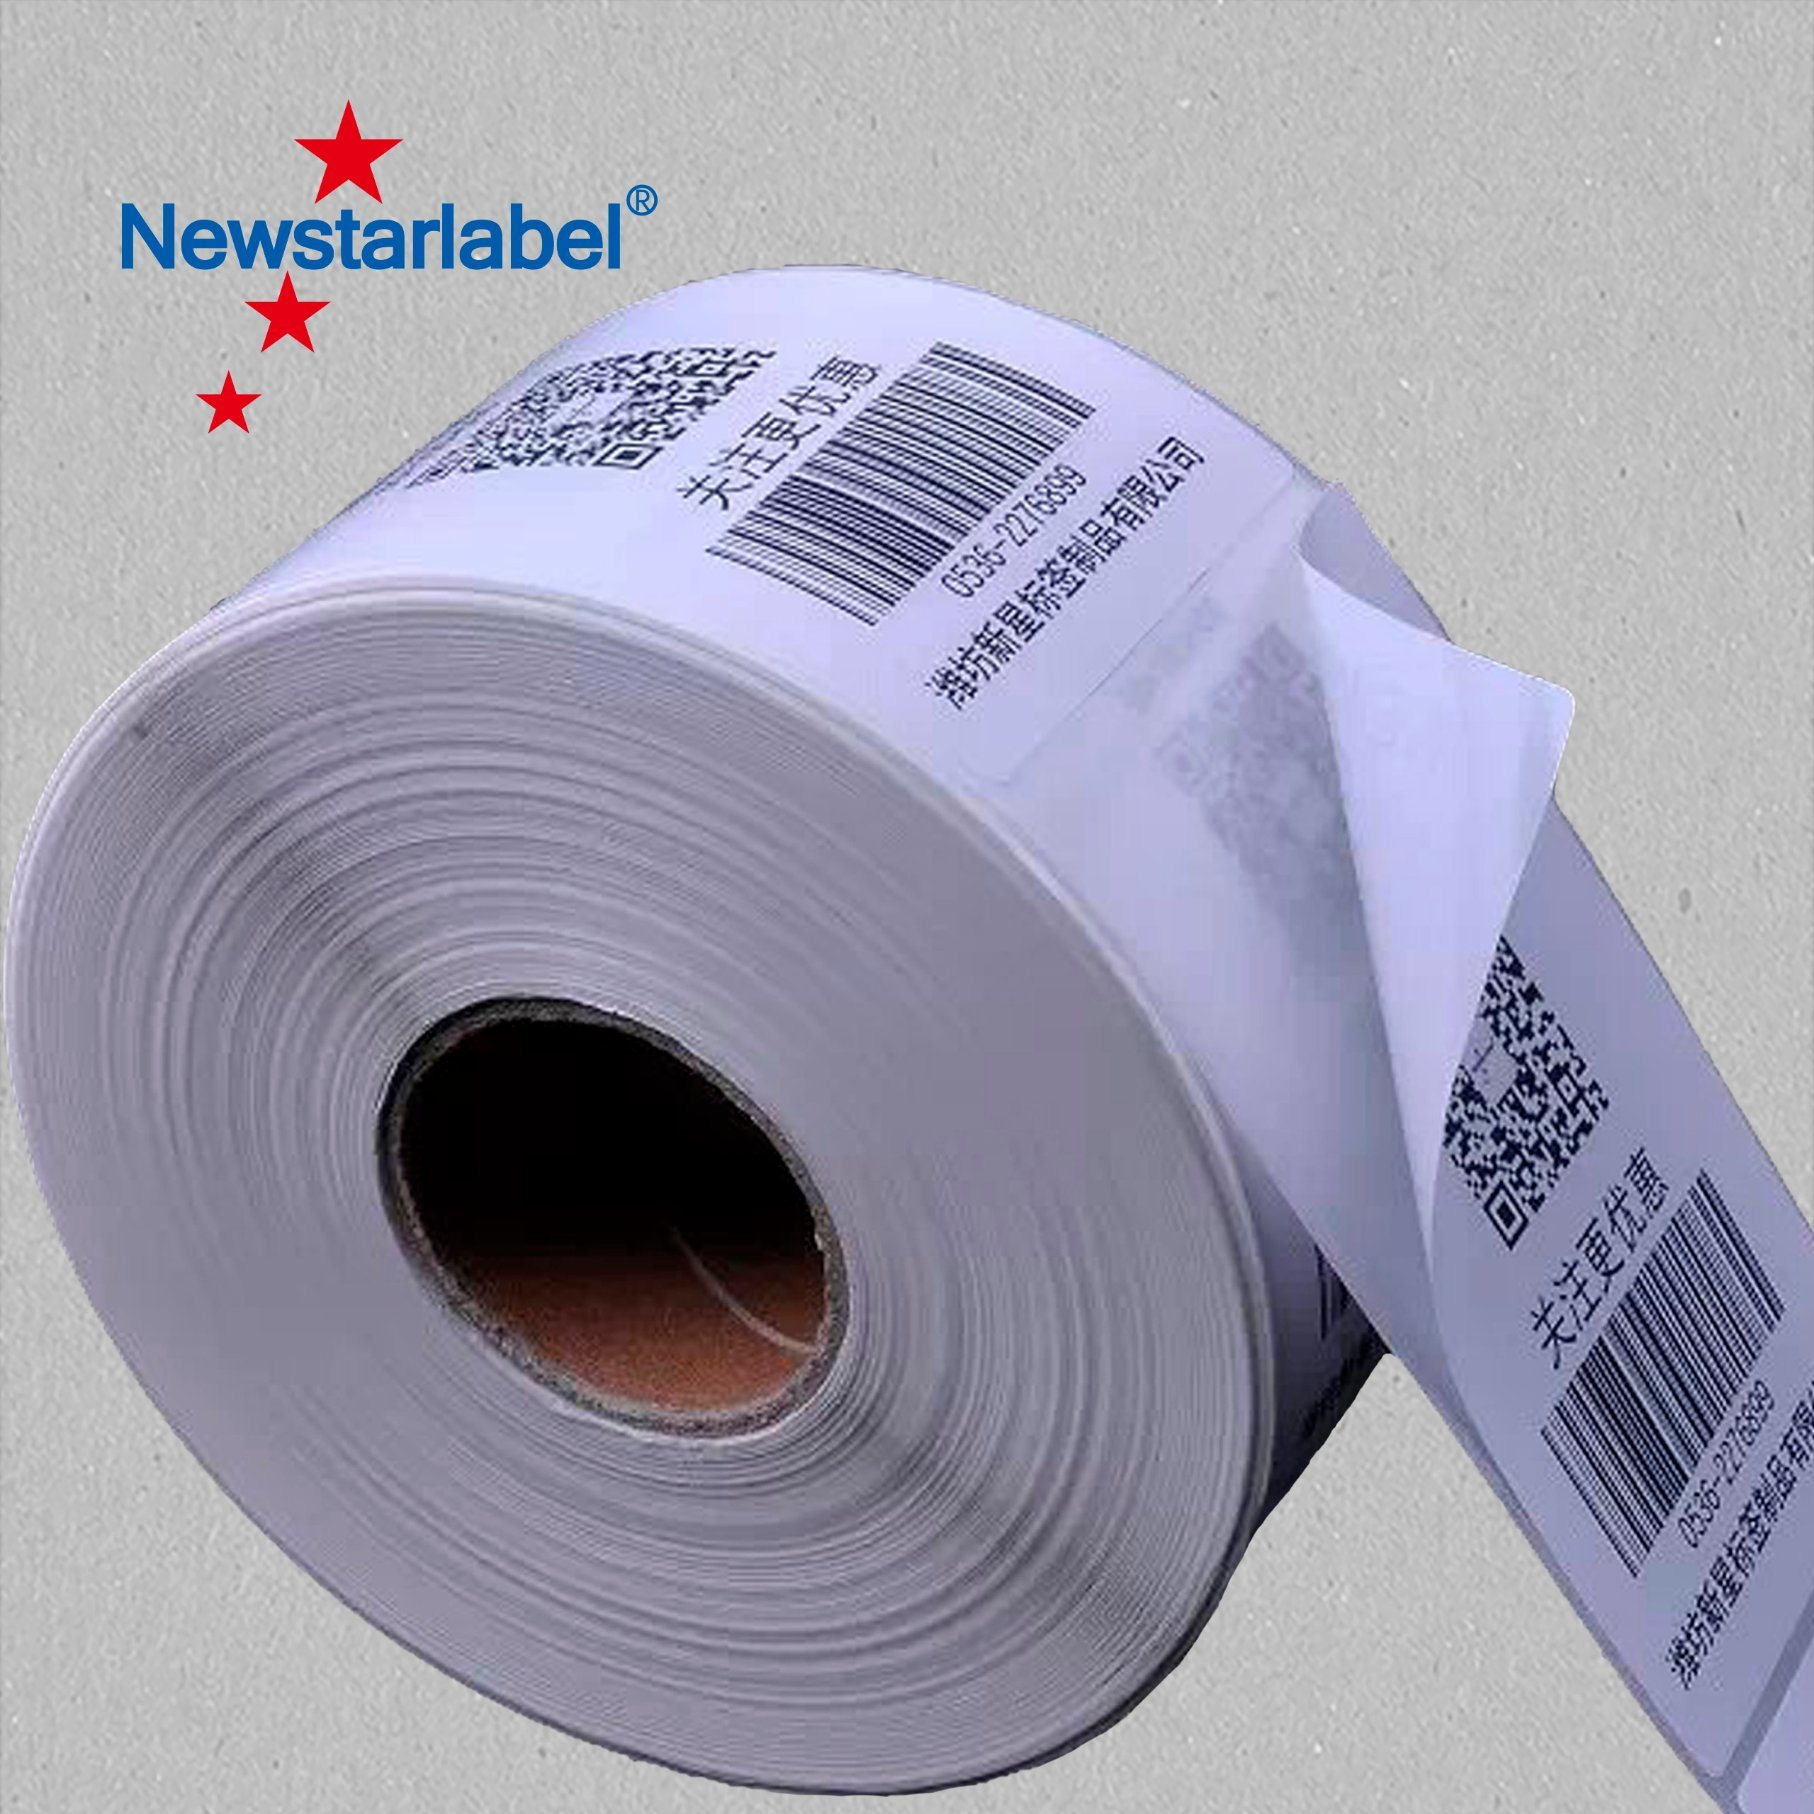 China wholesale custom brand name private logo scan barcode printed printing labels stickers for garment china thermal paper sticker label